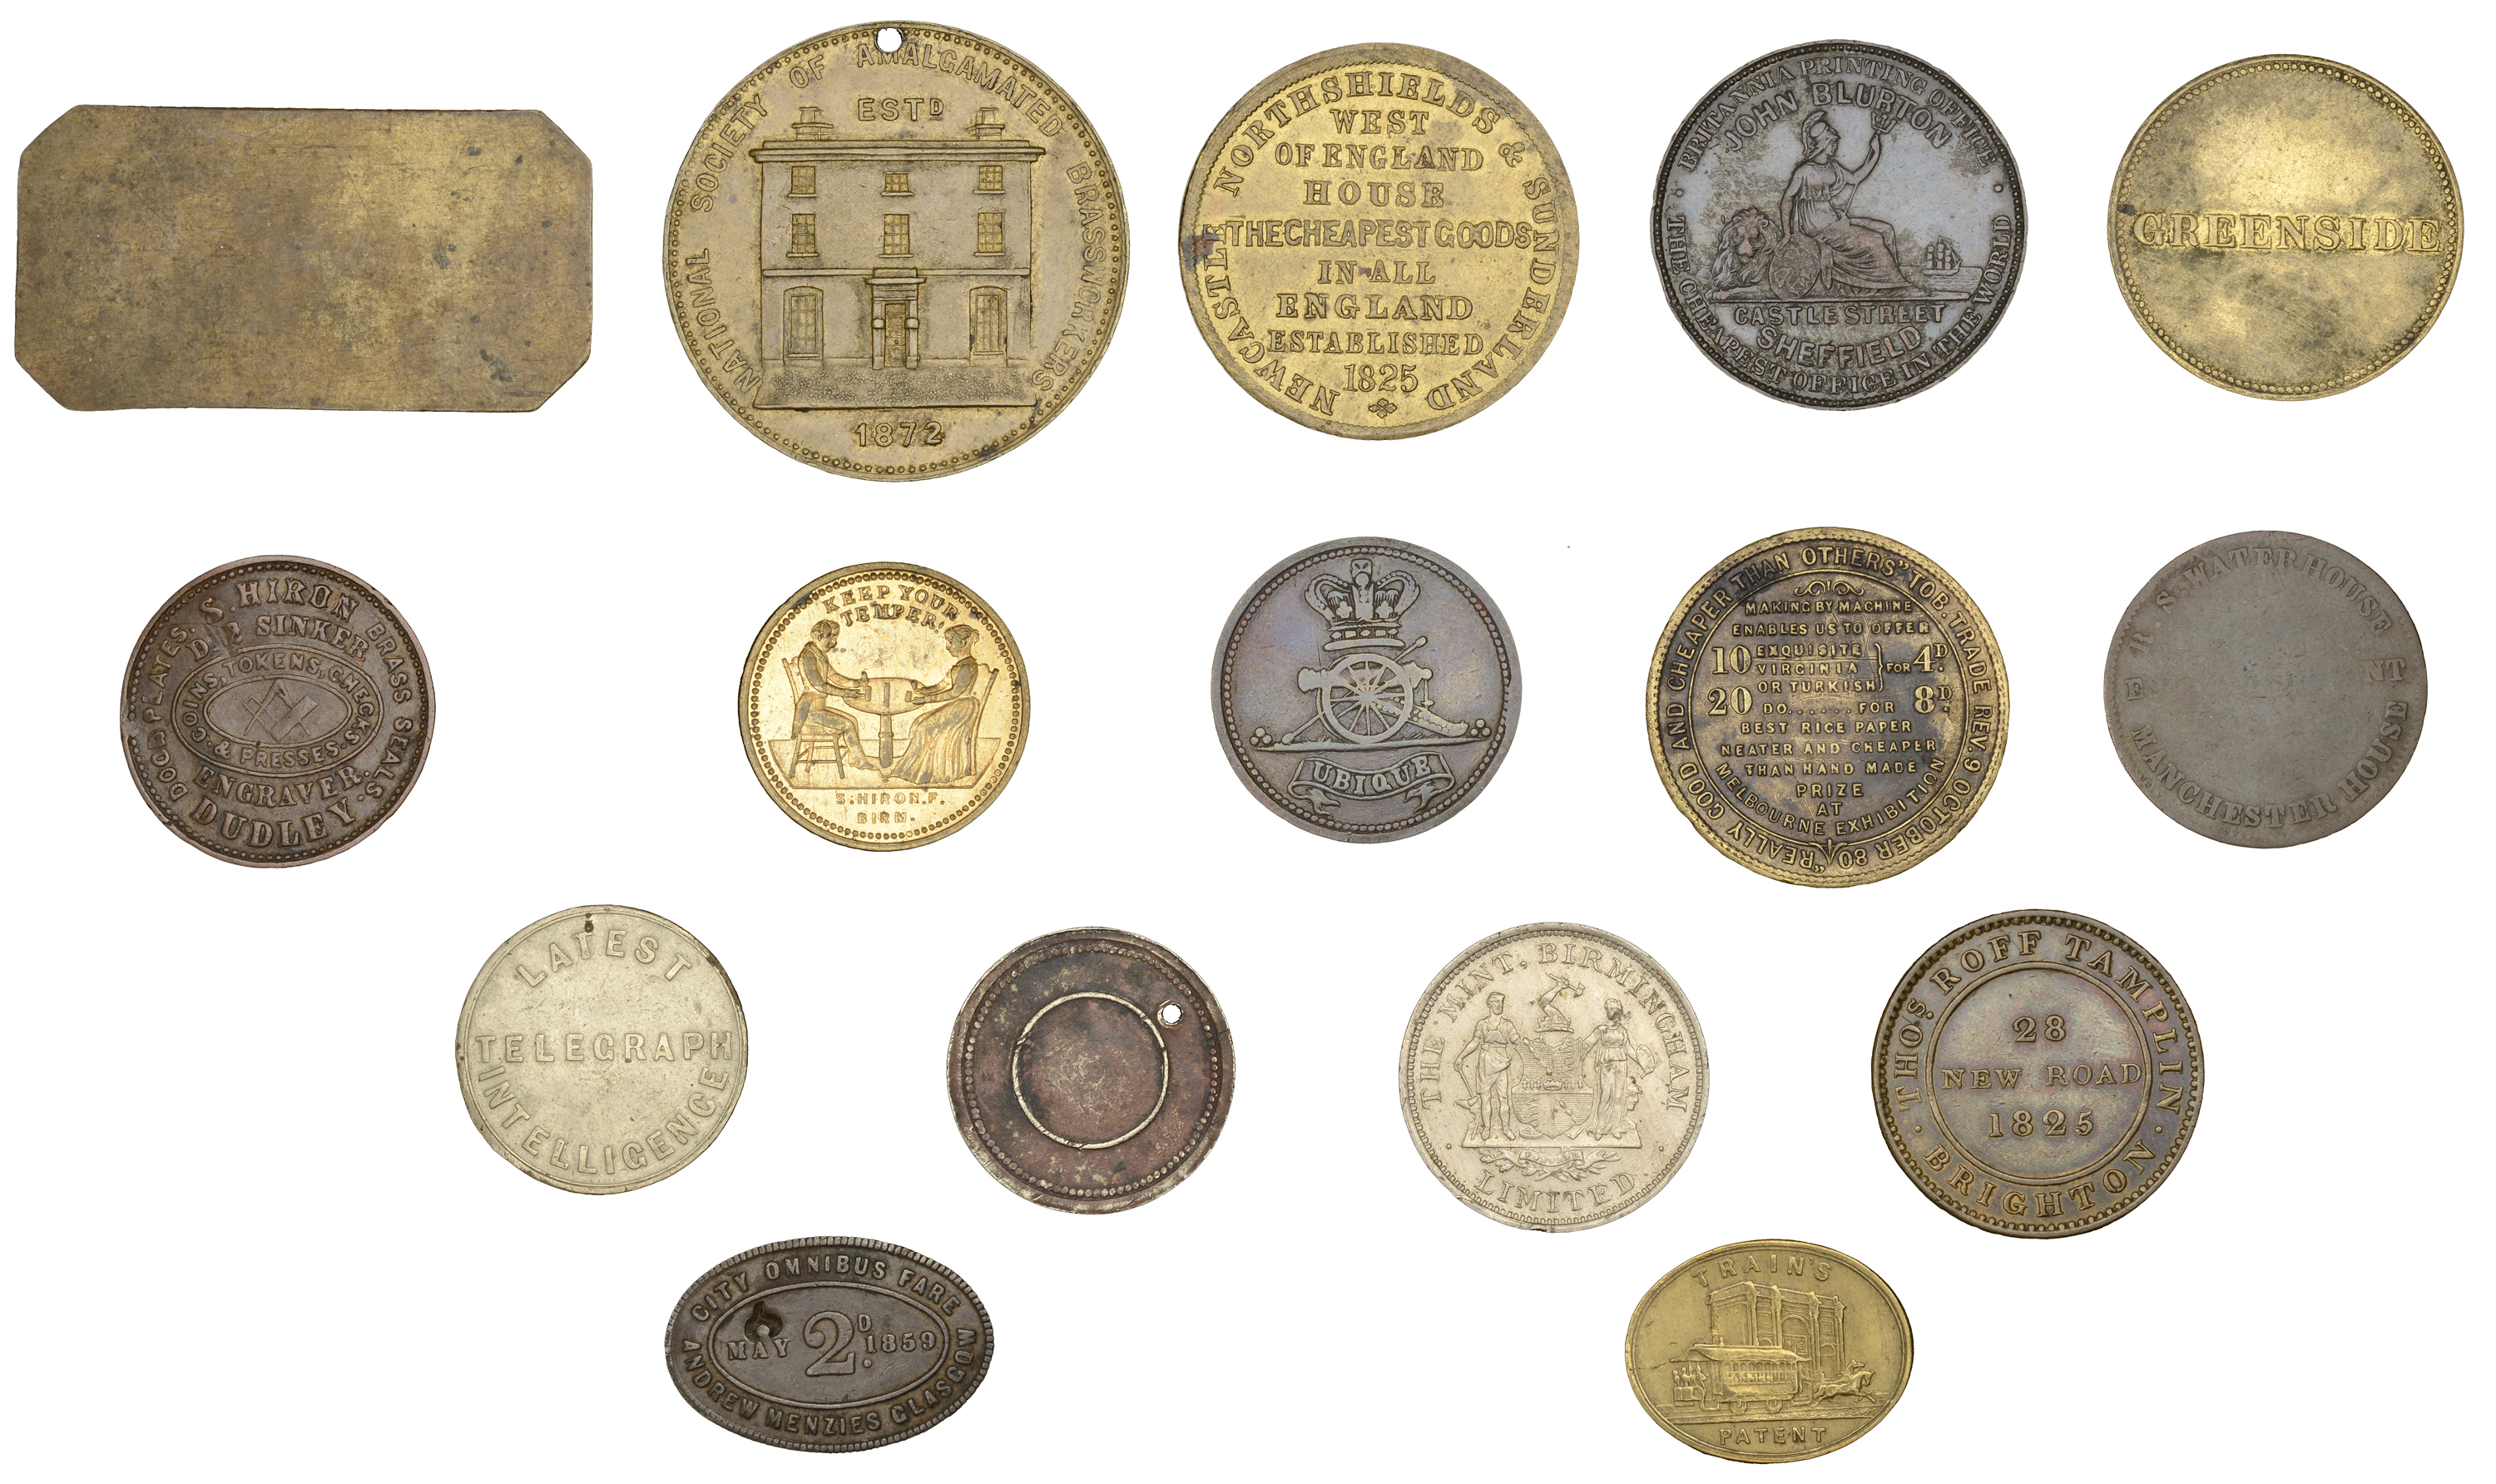 British Tokens from the Collection of the late Bill McKivor - Image 2 of 2